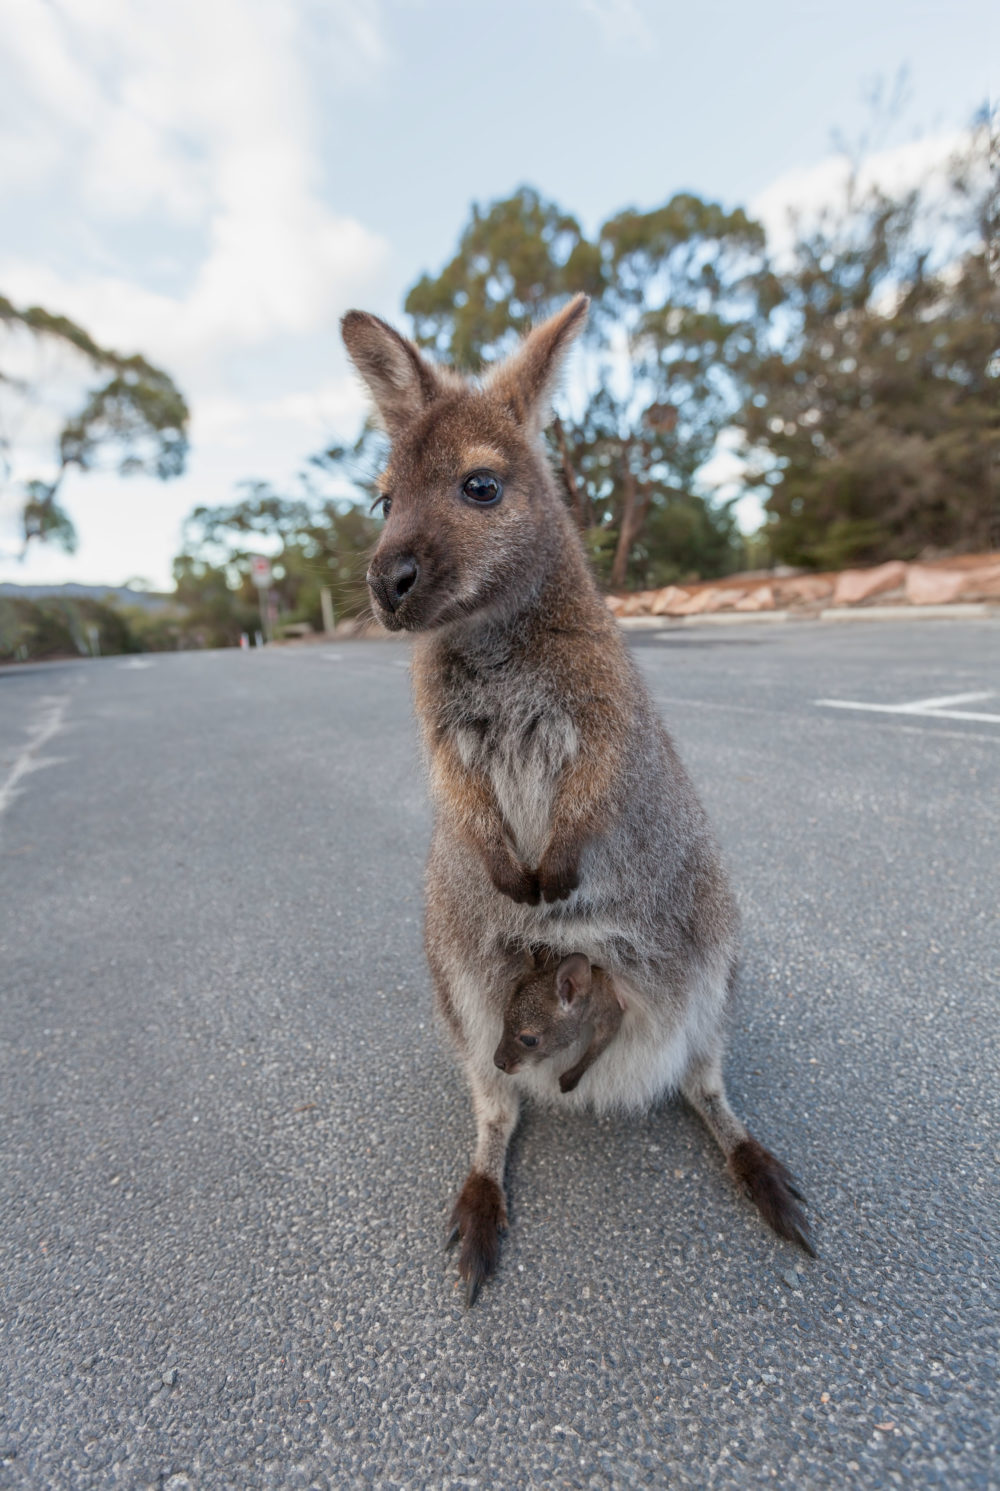 Bennet's wallaby with joey in the pouch portrait. Tasmania, Australia.